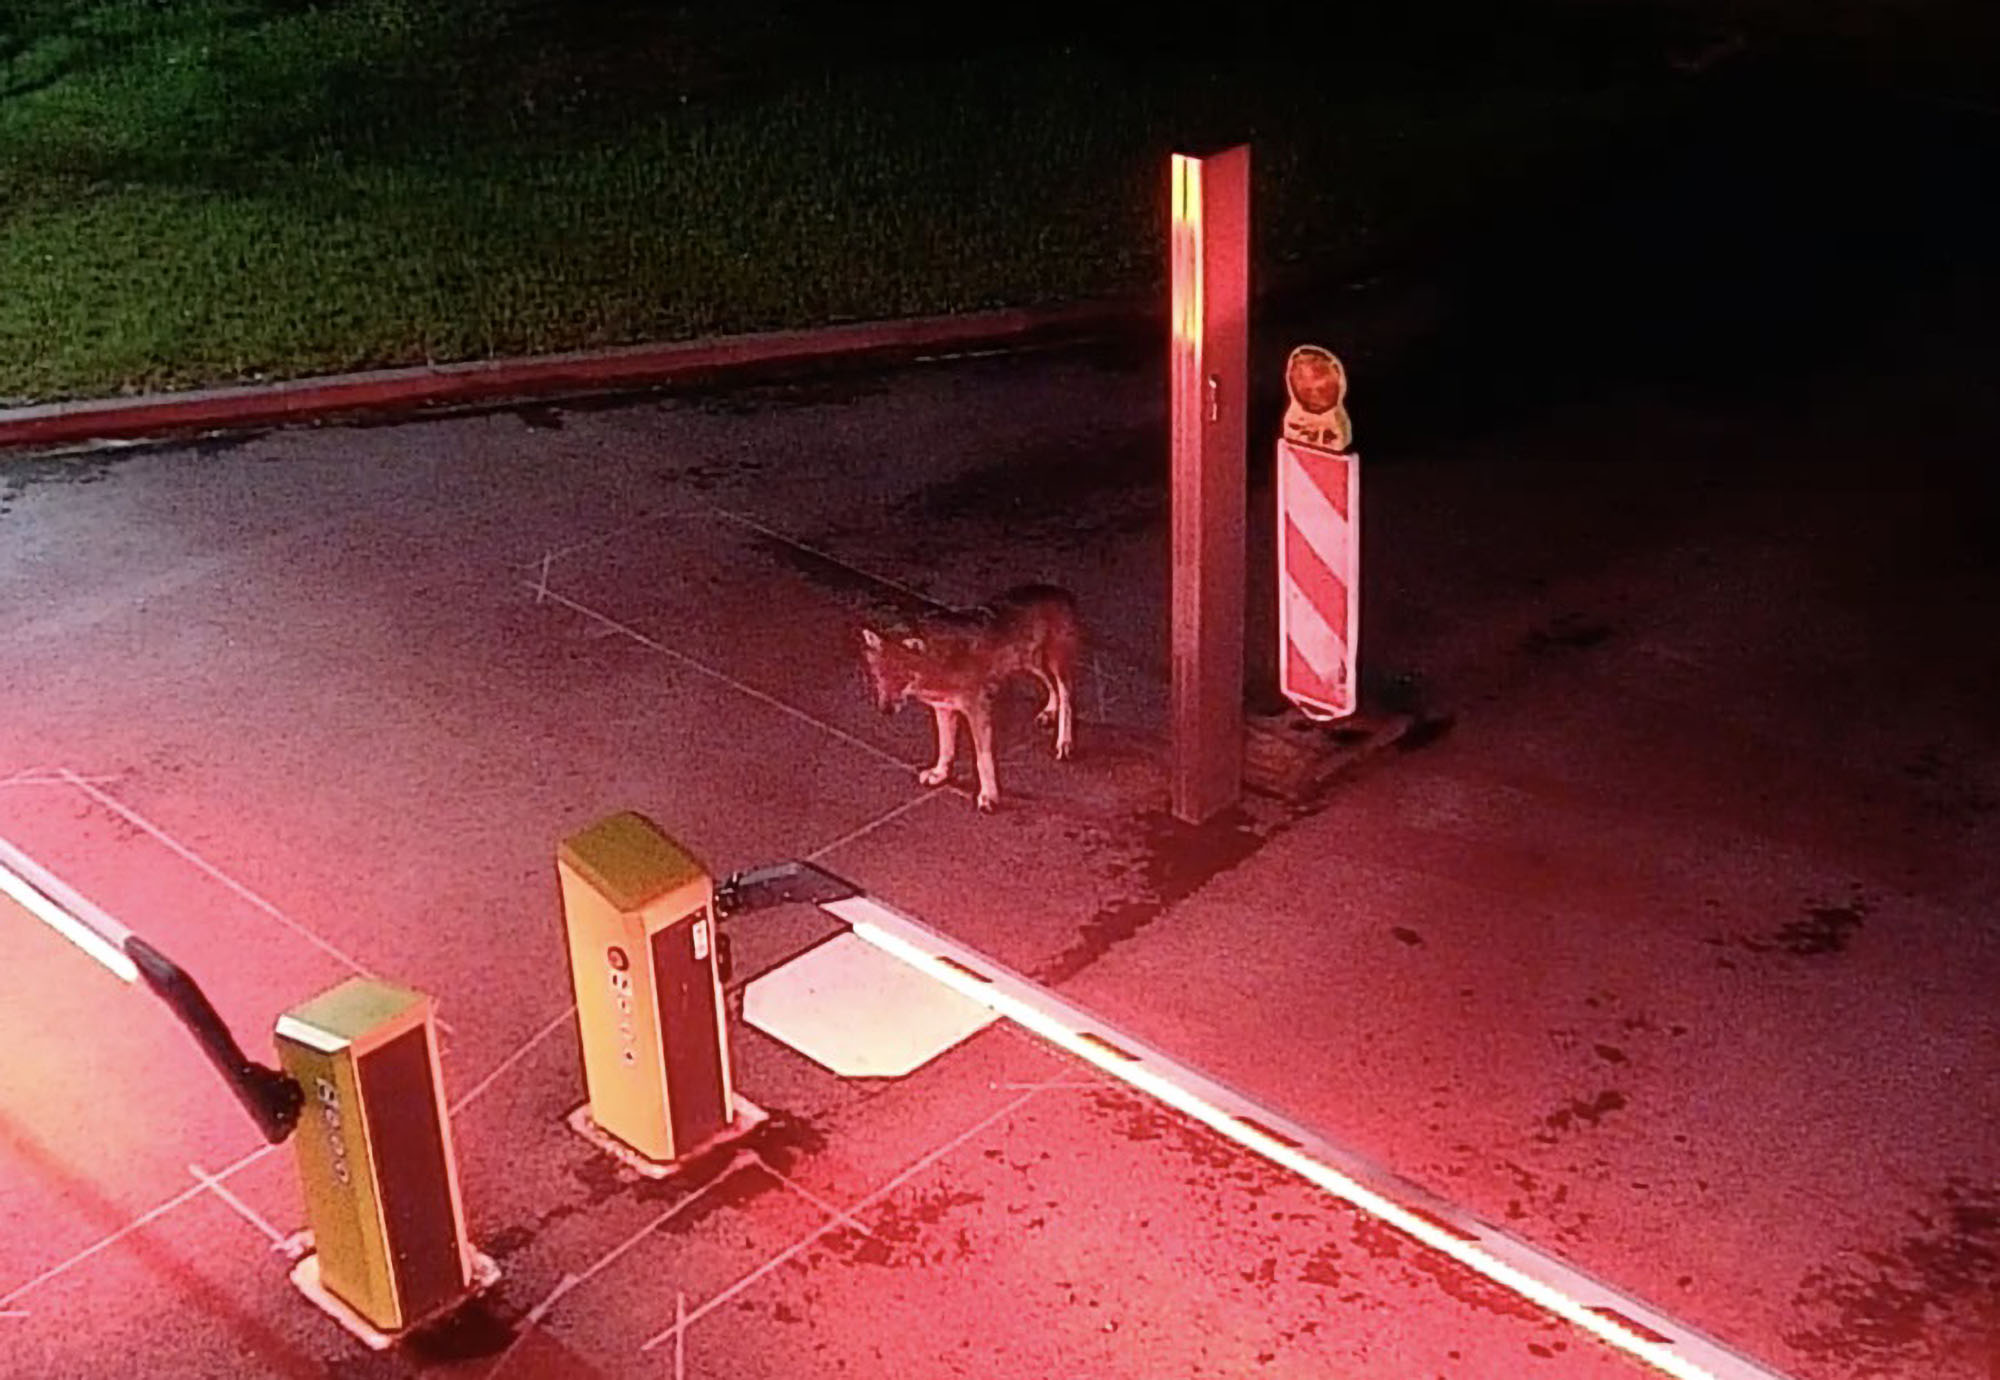 VIDEO: Howl I Get Out Of Here? Lost Wolf Prowls City Power Plant